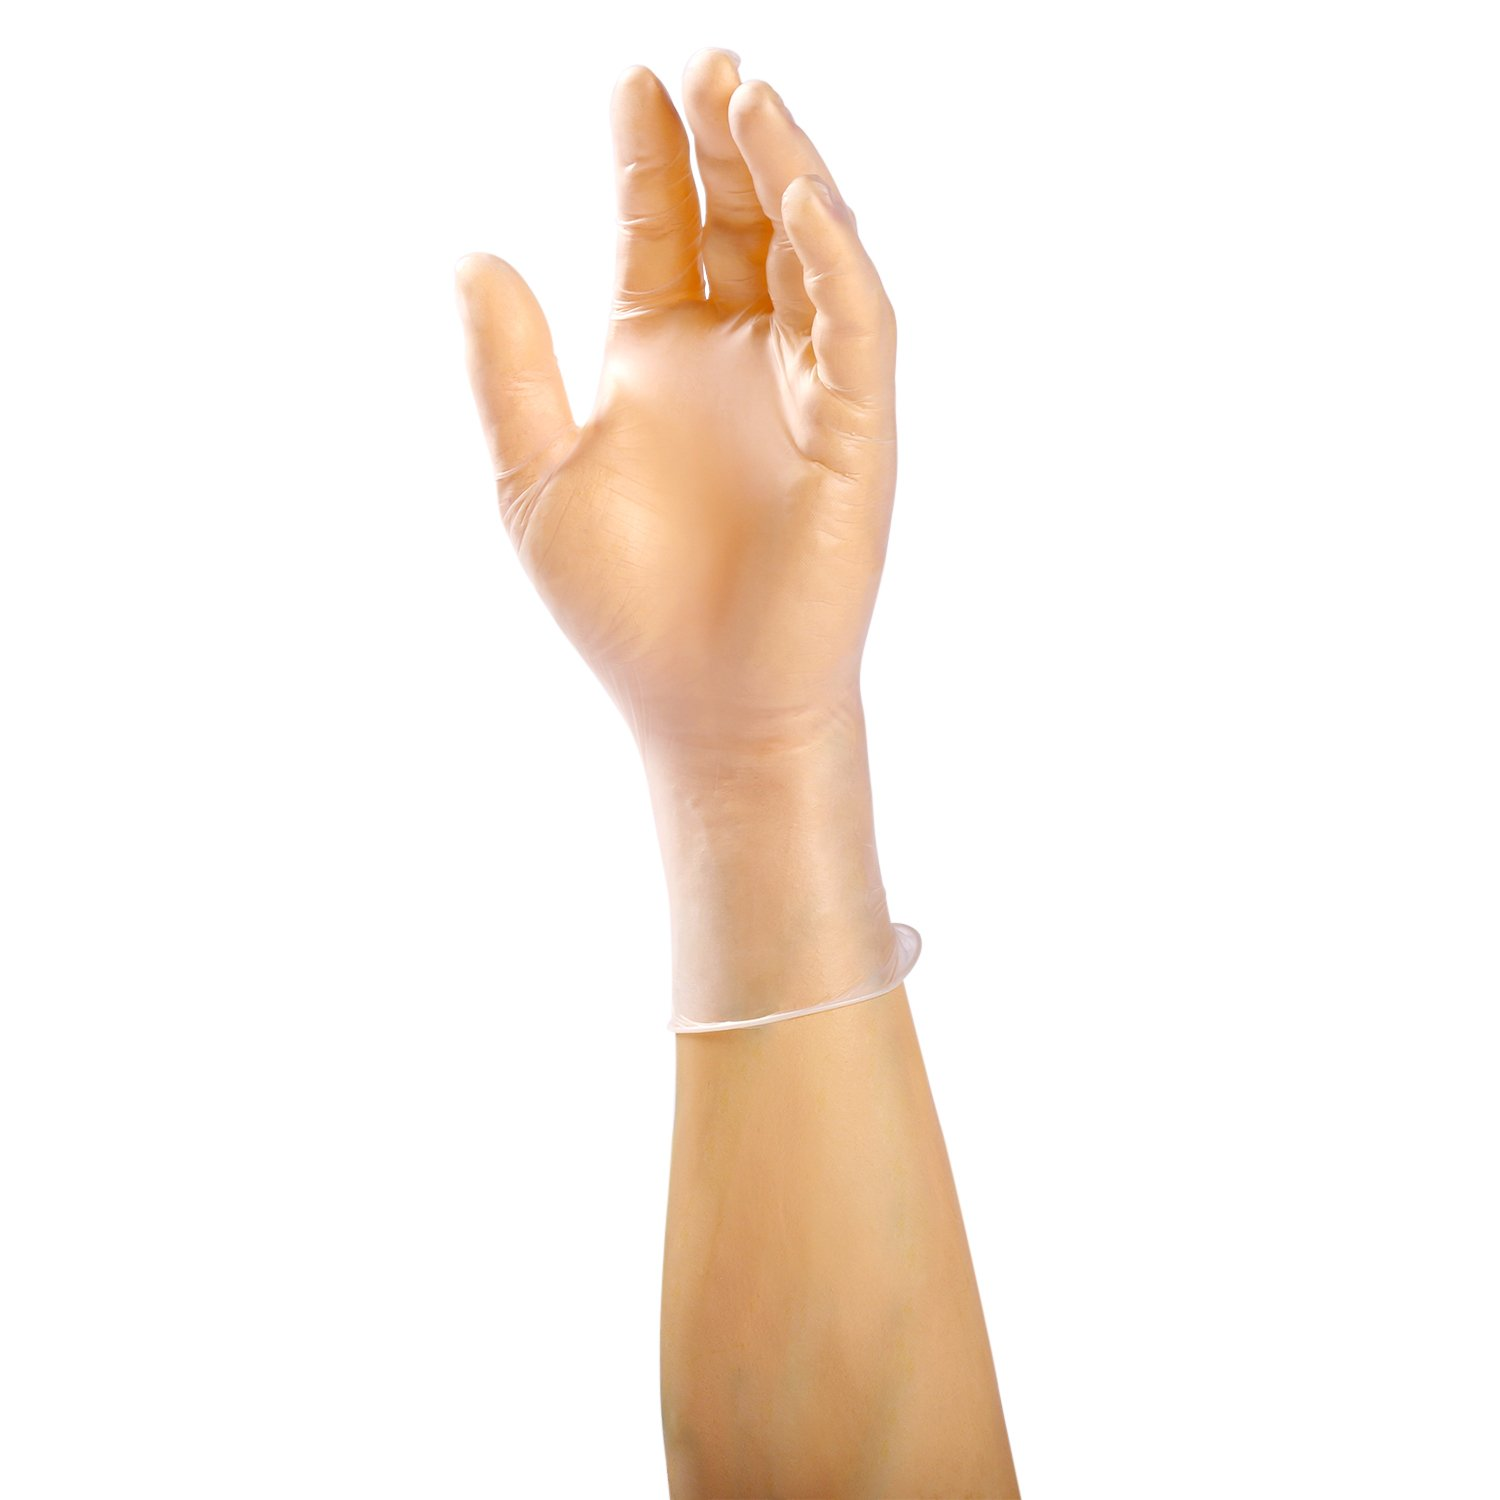 AmerCare 22993-C Anchor Powder Free Vinyl Gloves, Large (Pack of 1000) by Amercare (Image #3)